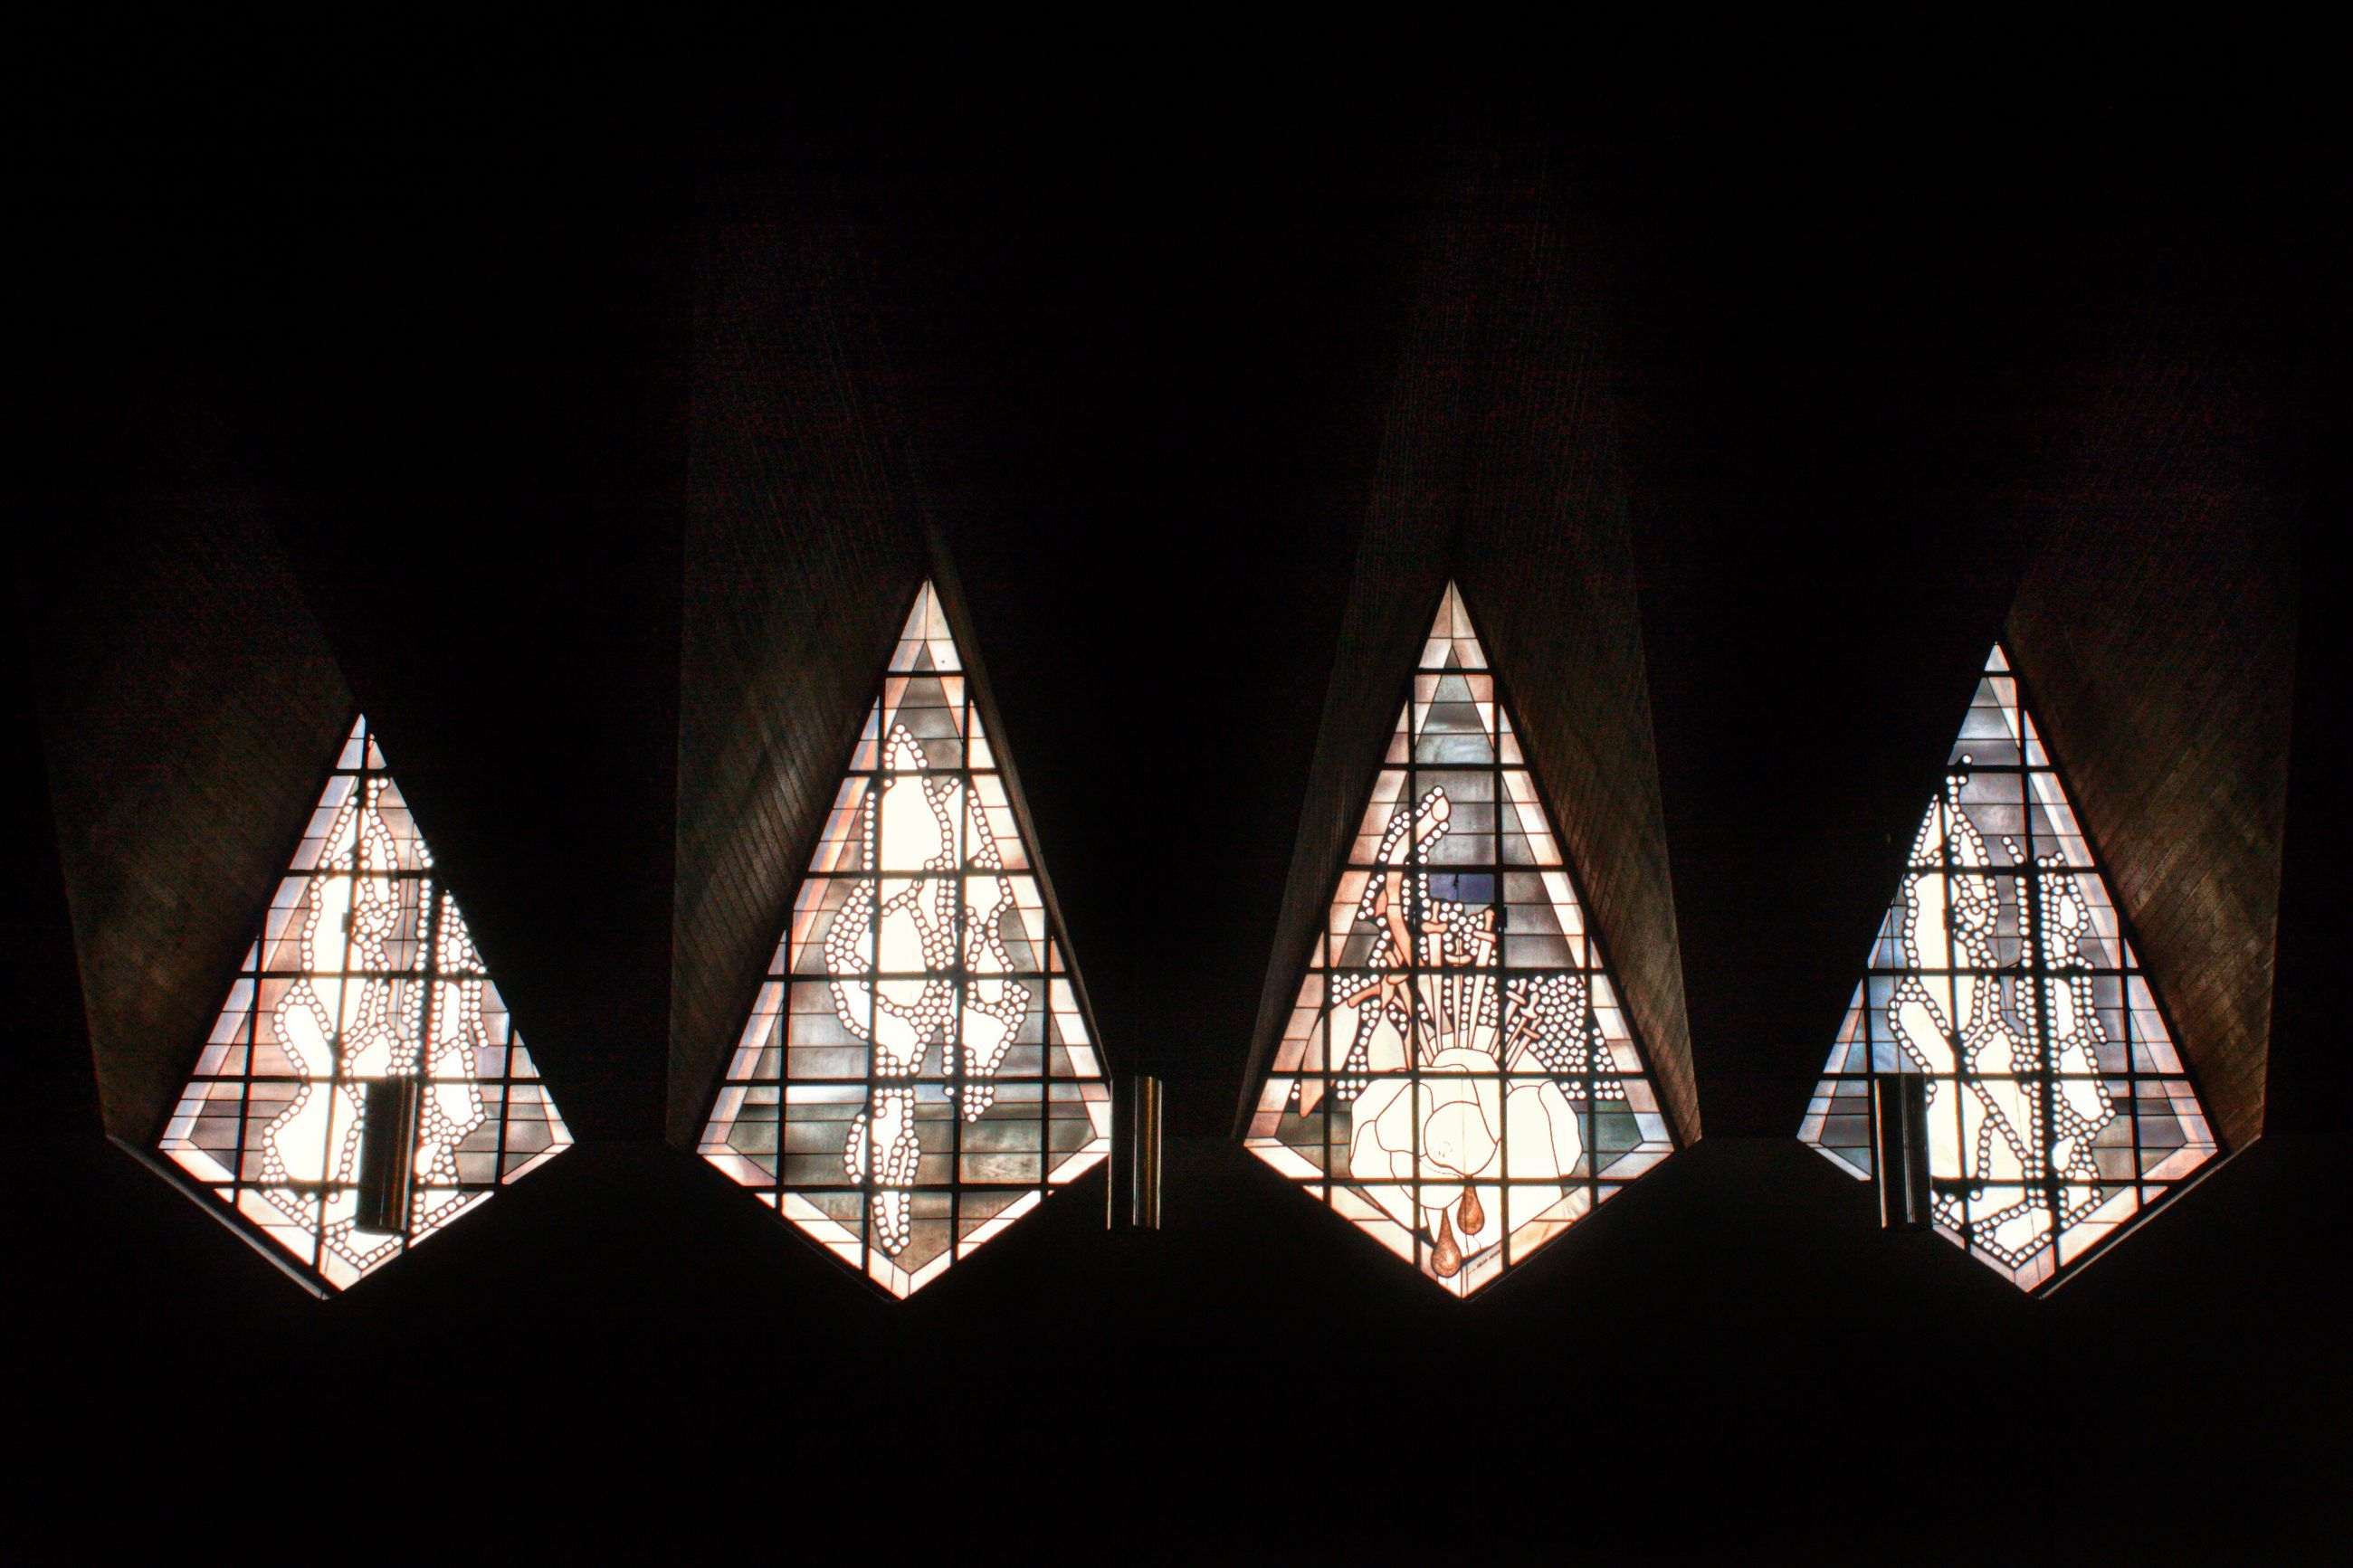 indoors, window, silhouette, architecture, no people, built structure, day, close-up